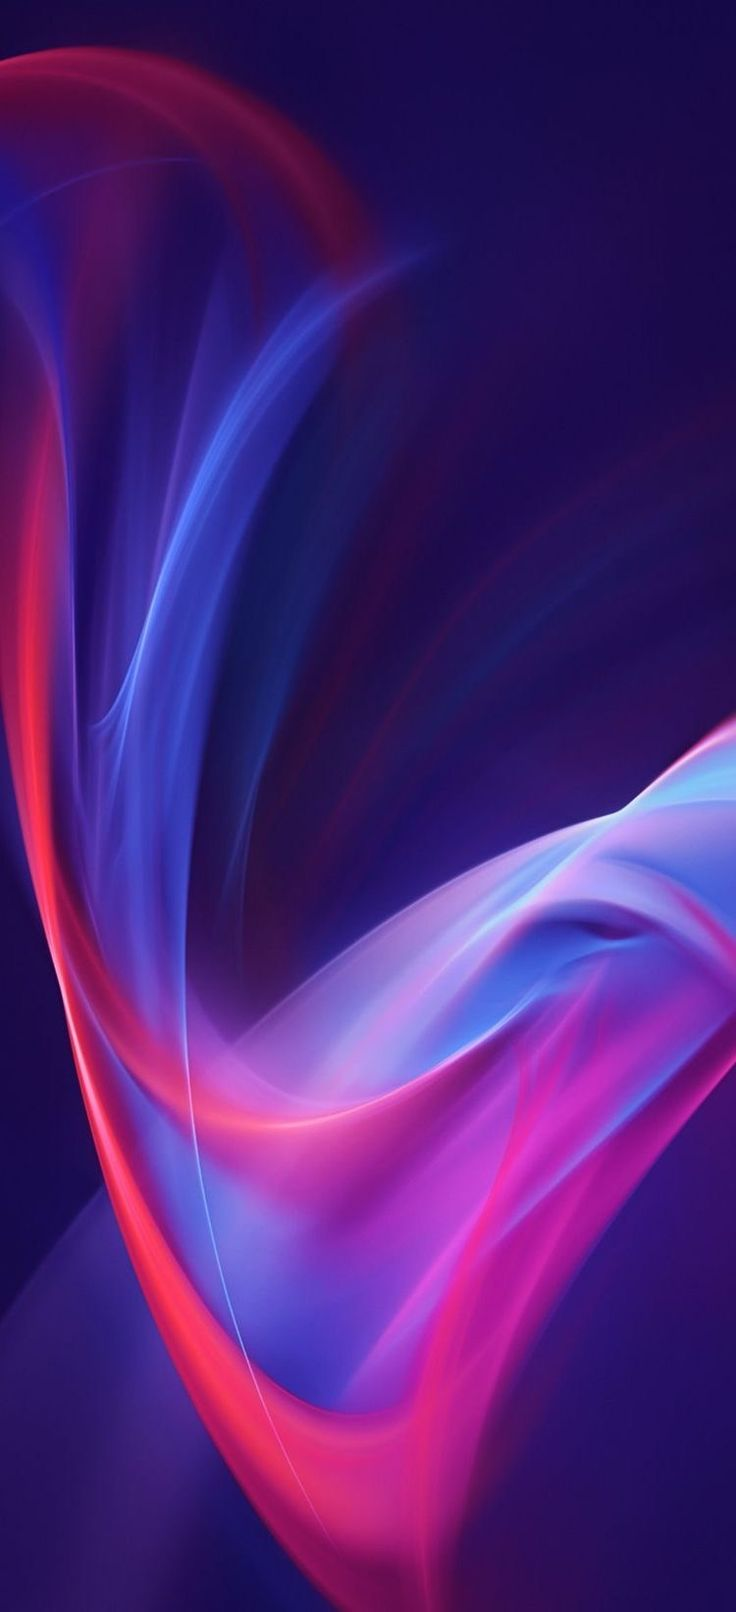 Abstract HD Wallpapers 443675000791310781 6